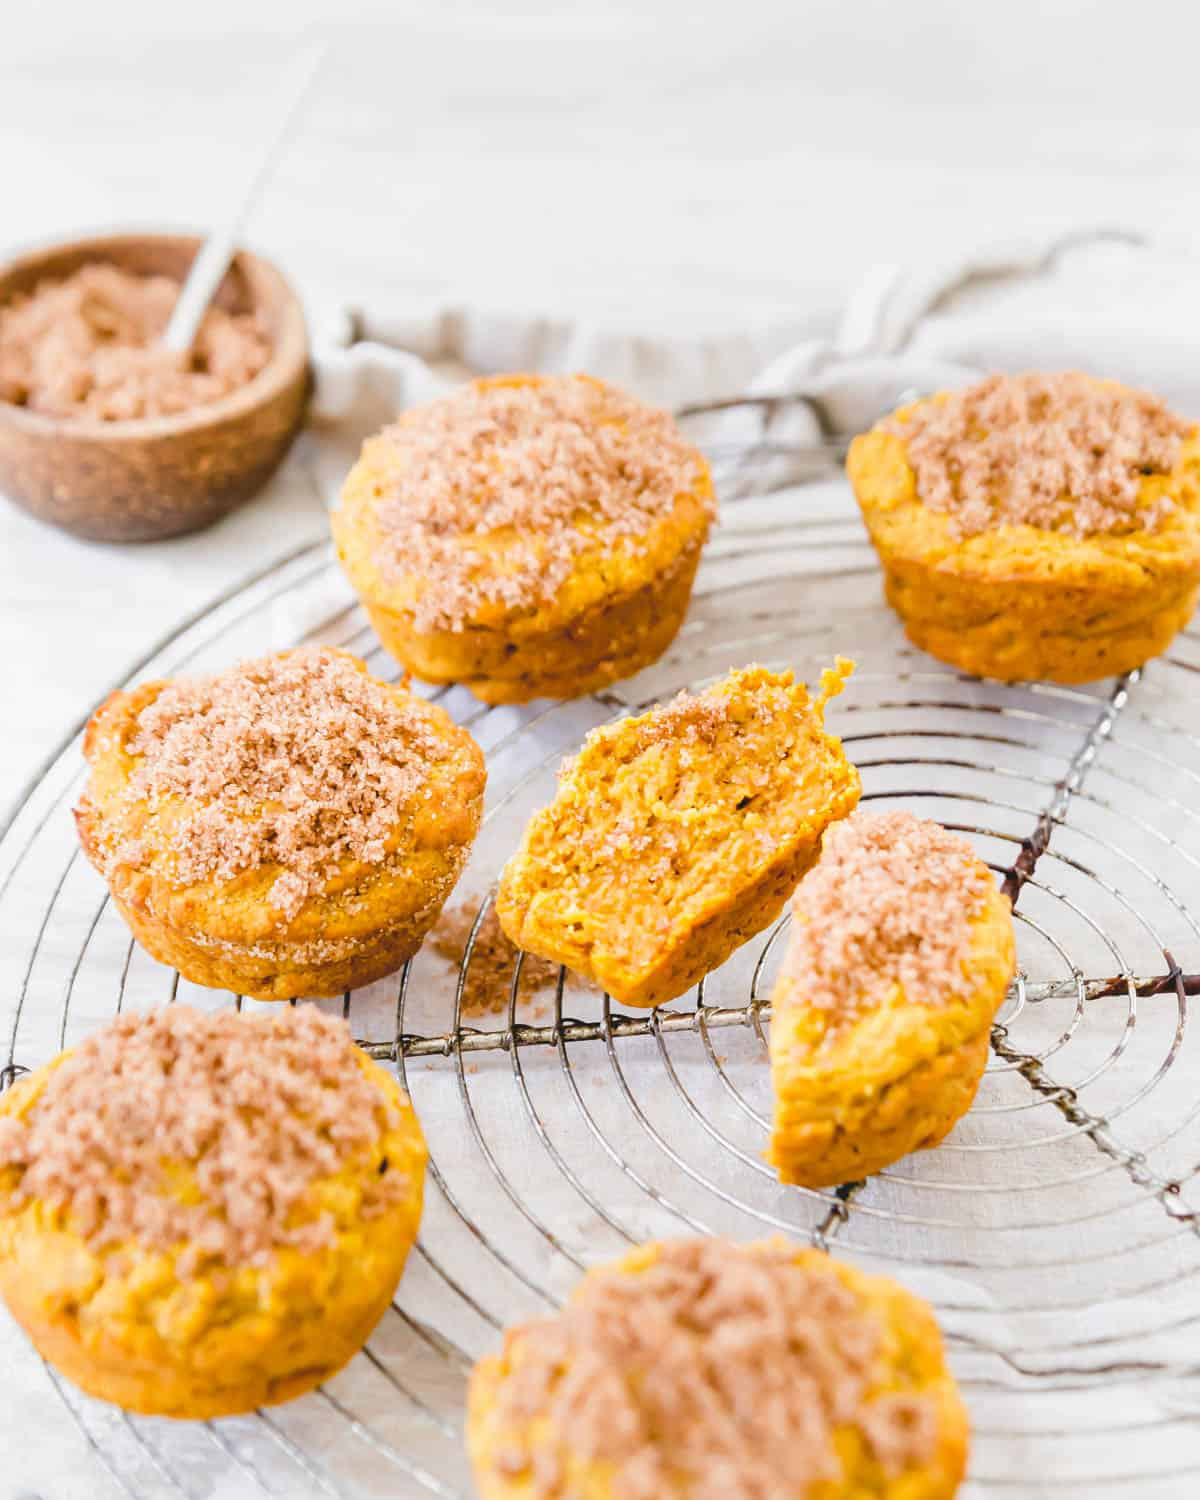 Enjoy these gluten free, dairy-free and vegan pumpkin muffins with just a handful of simple ingredients for the fall season.